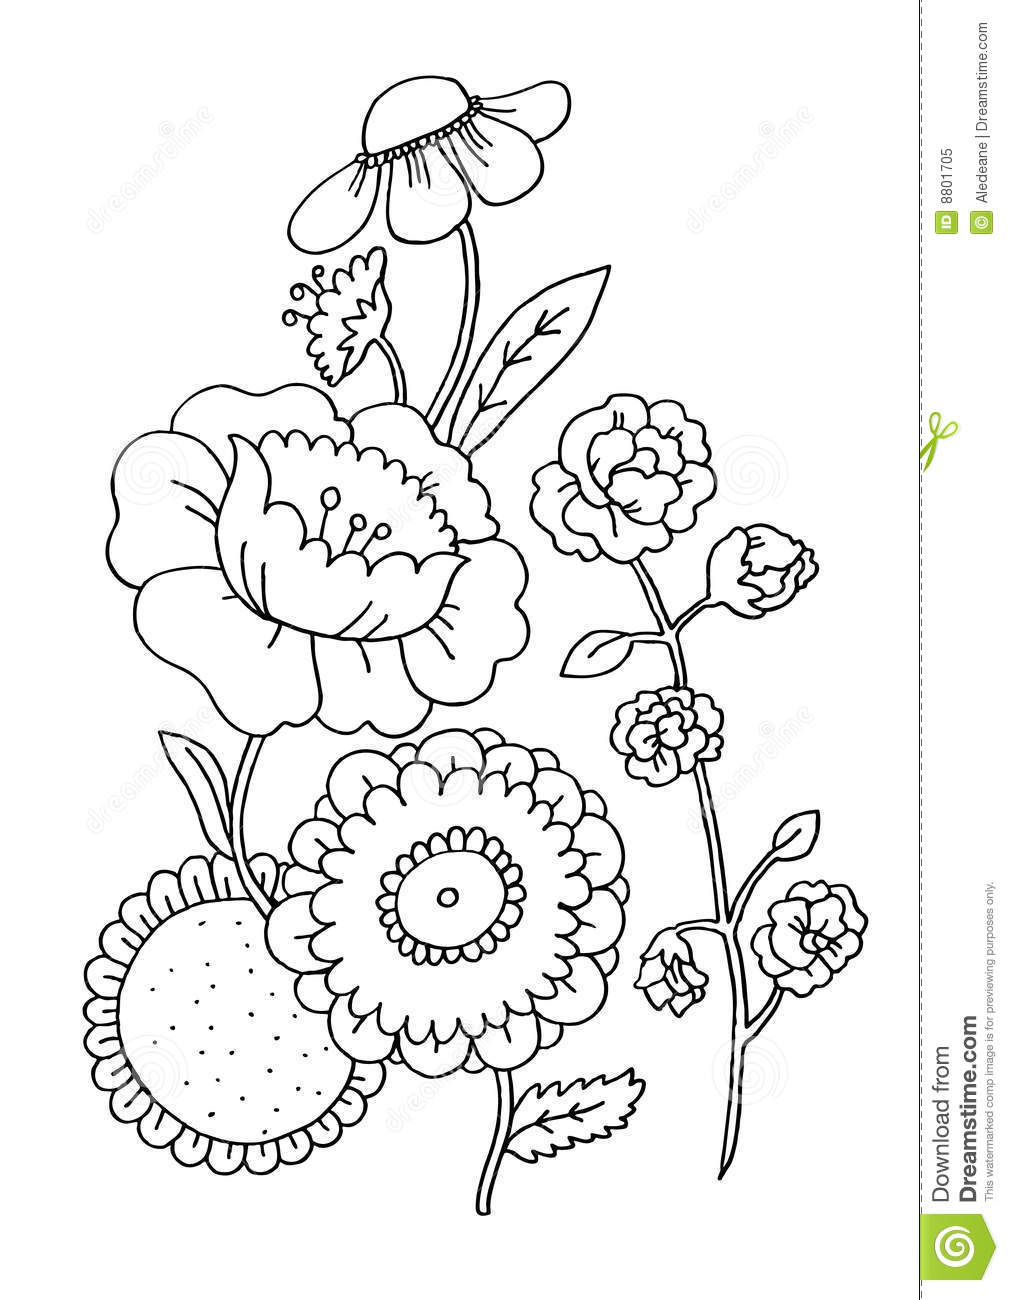 Flowers Coloring Page stock illustration. Illustration of education ...